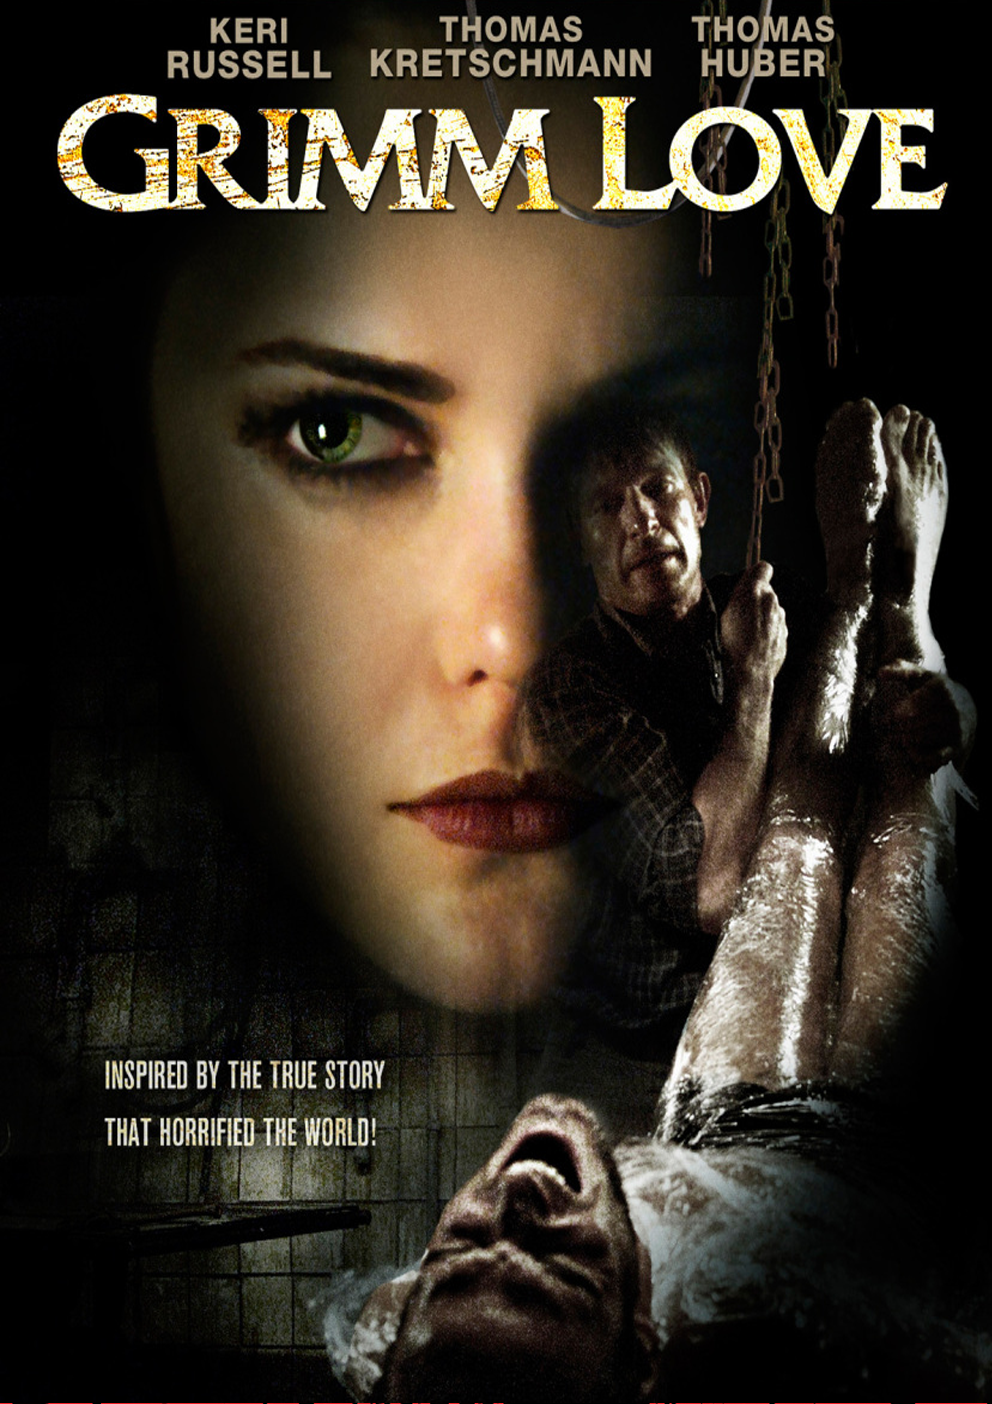 Grimm Love 2006 Click On The Photo To Watch The Film Online Love Movie Grimm Horror Movies